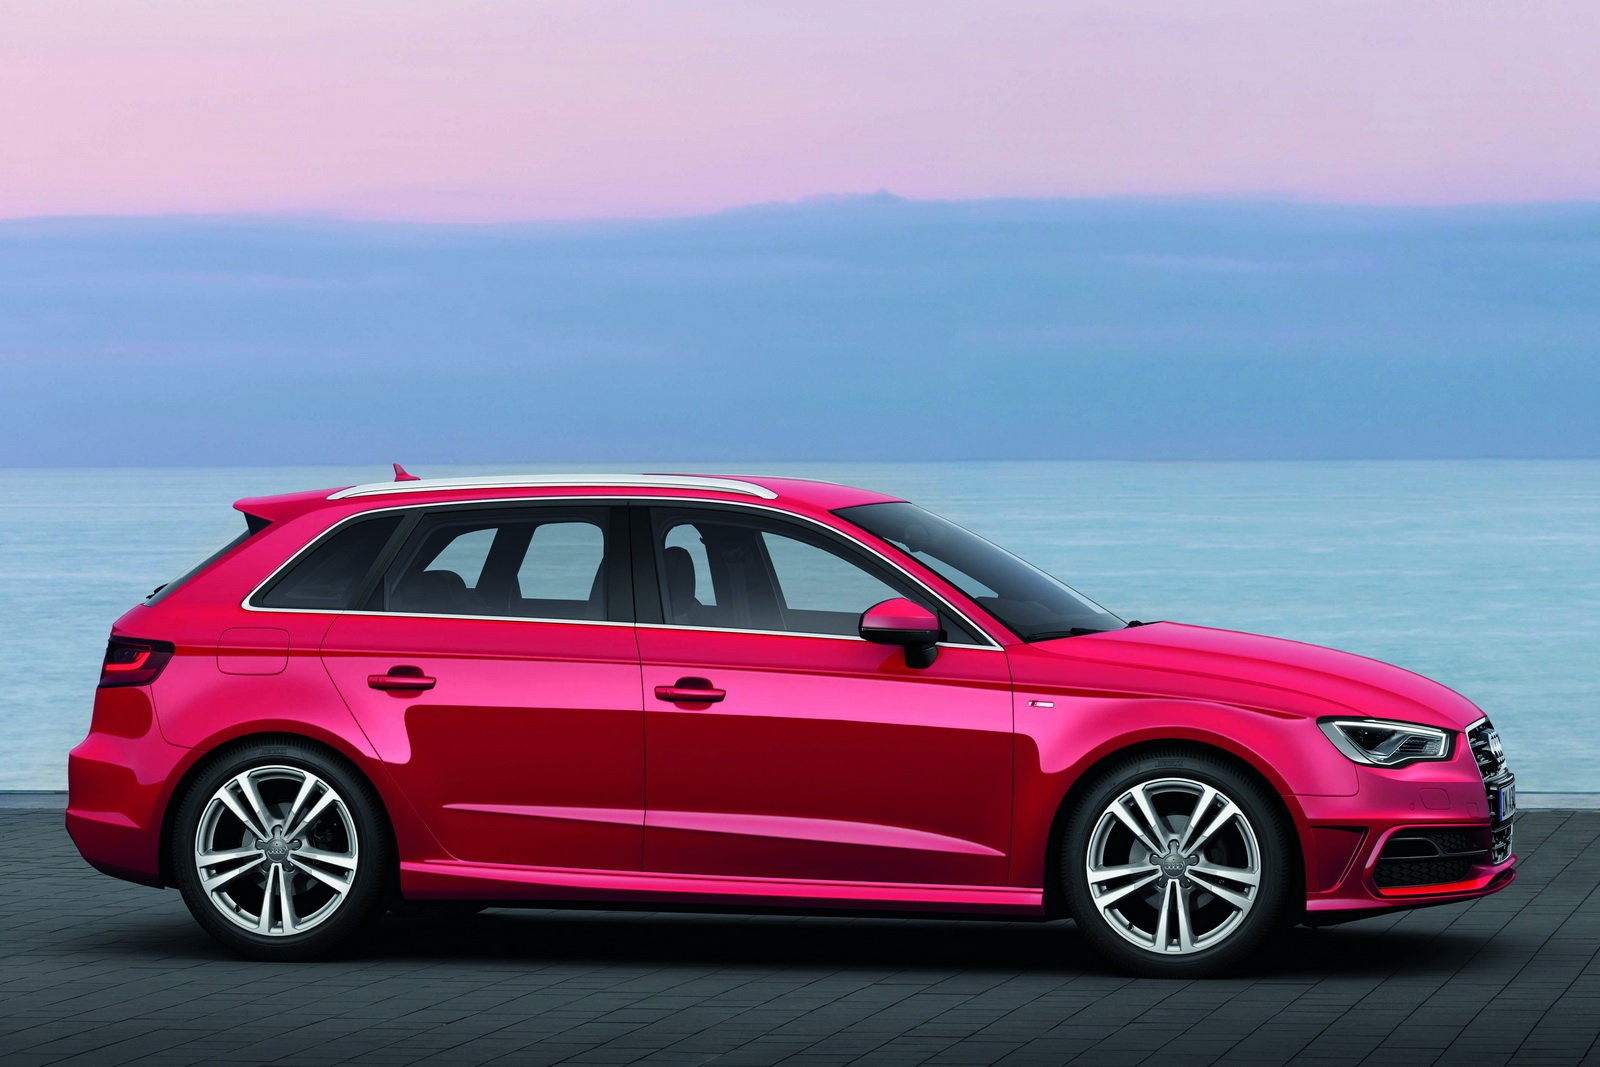 foto audi a3 sportback arrivano le 5 porte e il motore. Black Bedroom Furniture Sets. Home Design Ideas